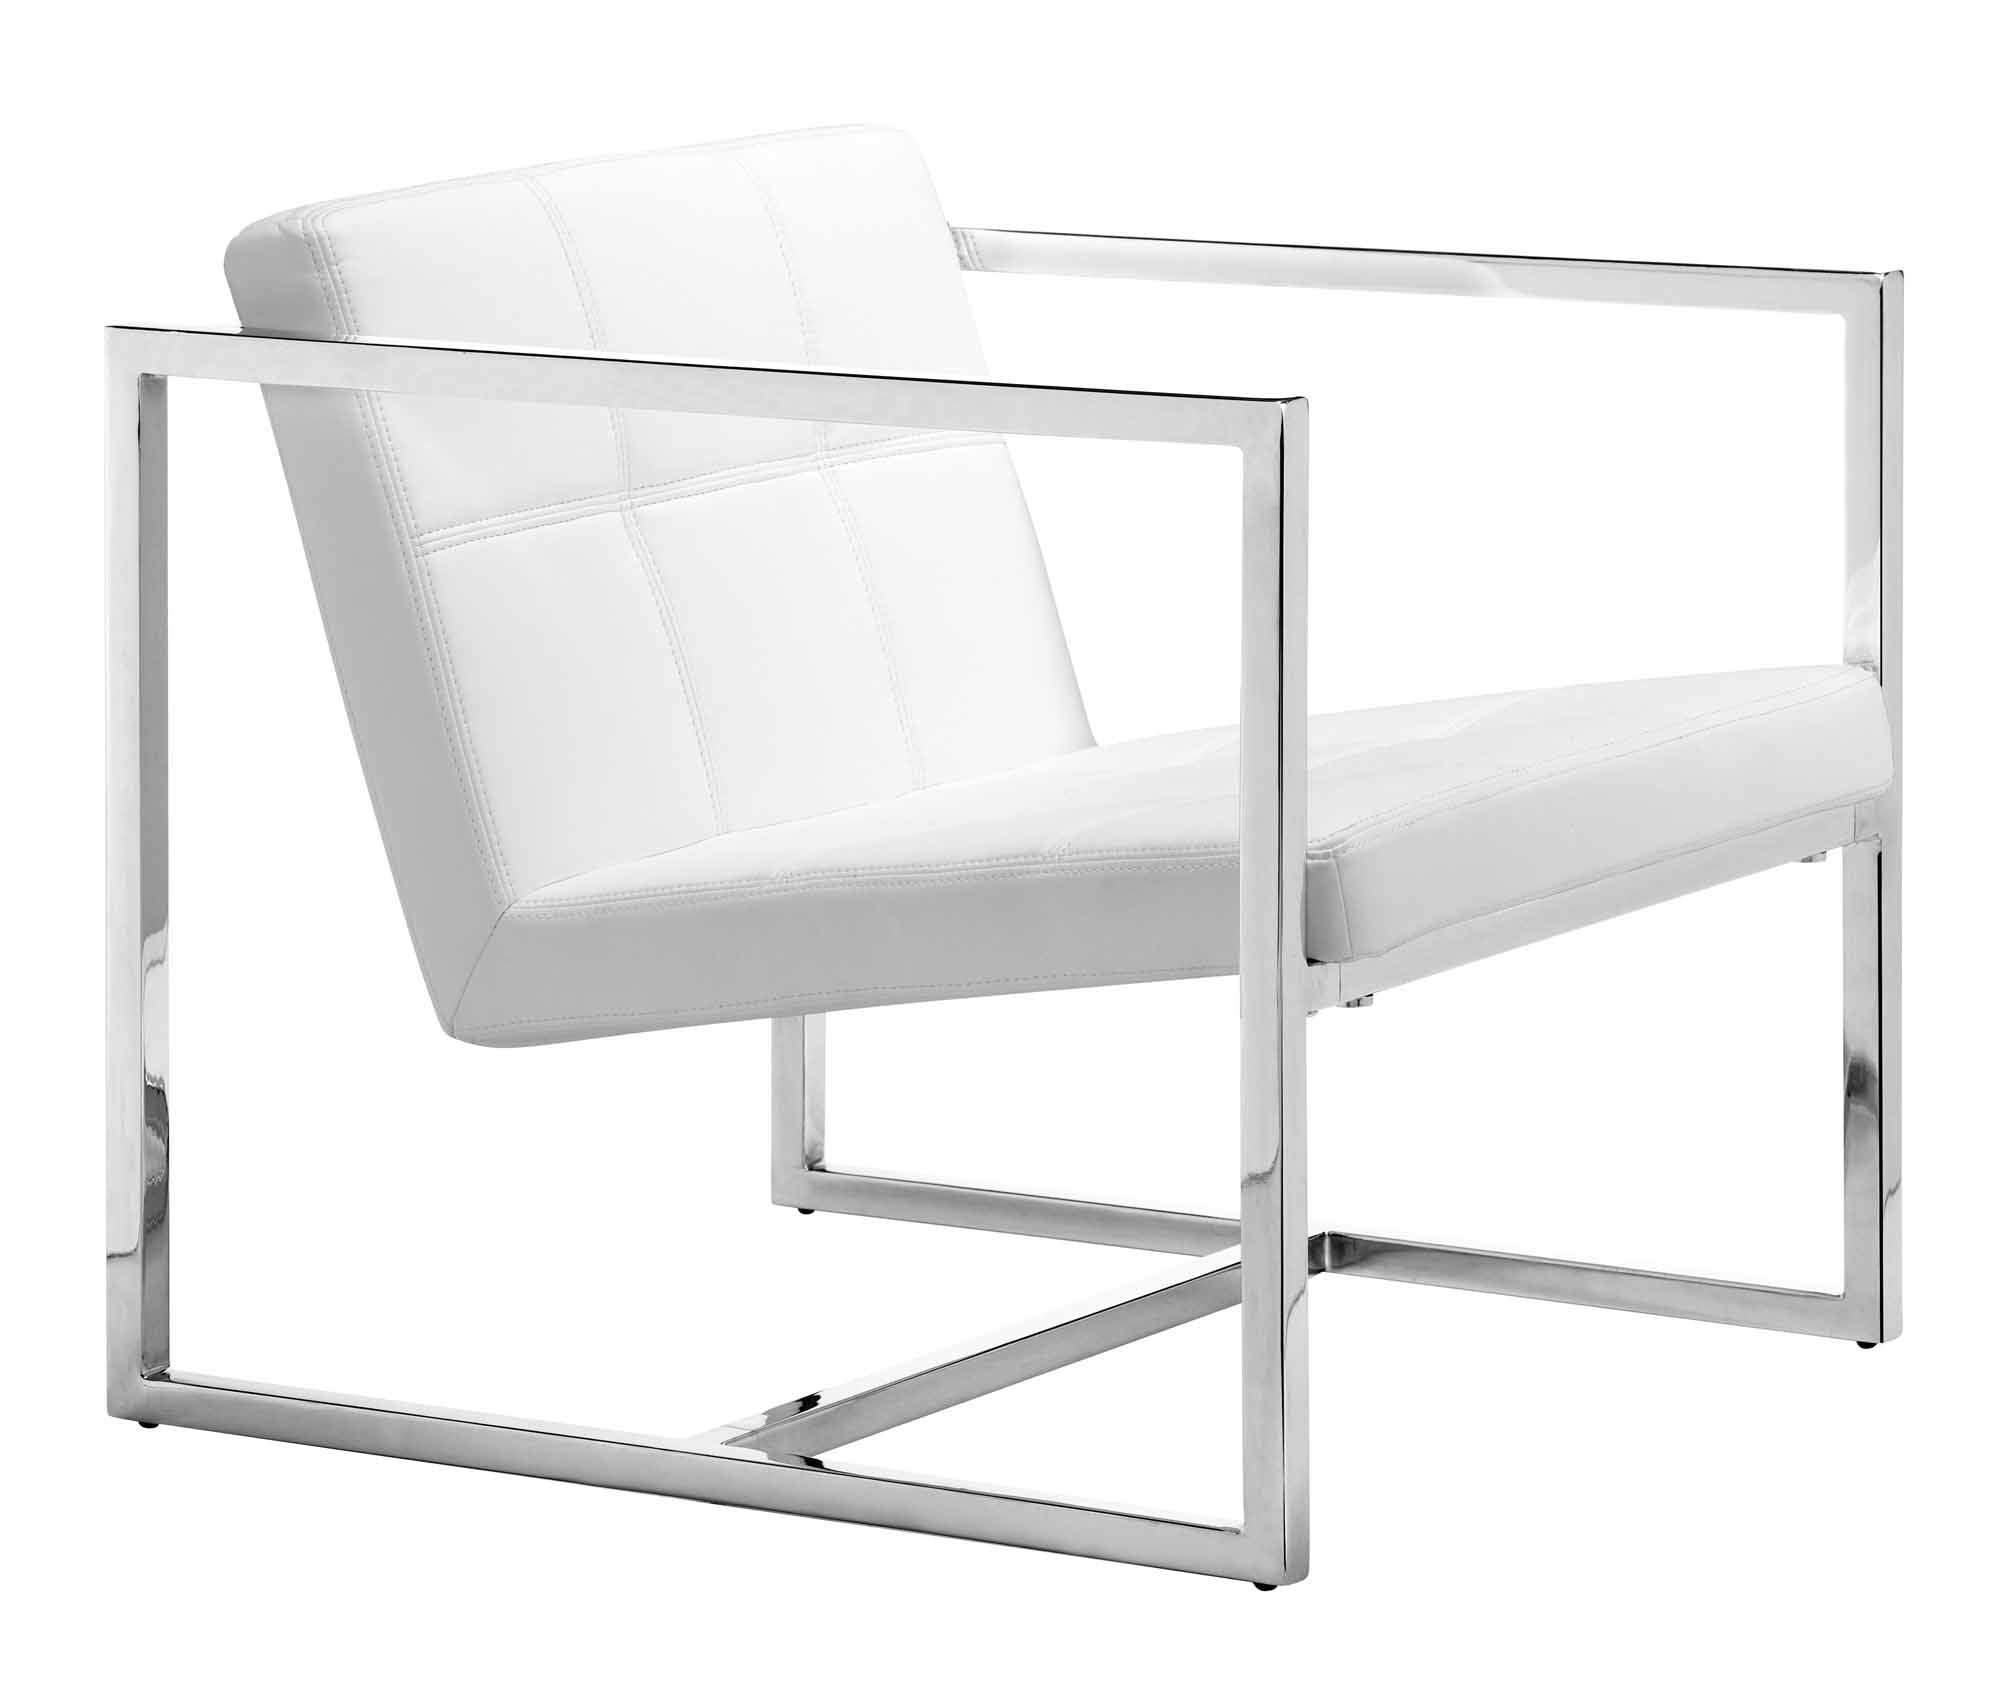 Zuo Modern Carbon Chair White - Chrome Steel Length 25.2 Width 28.3 - living-room-furniture, living-room, accent-chairs - 61K7fS1b4hL -